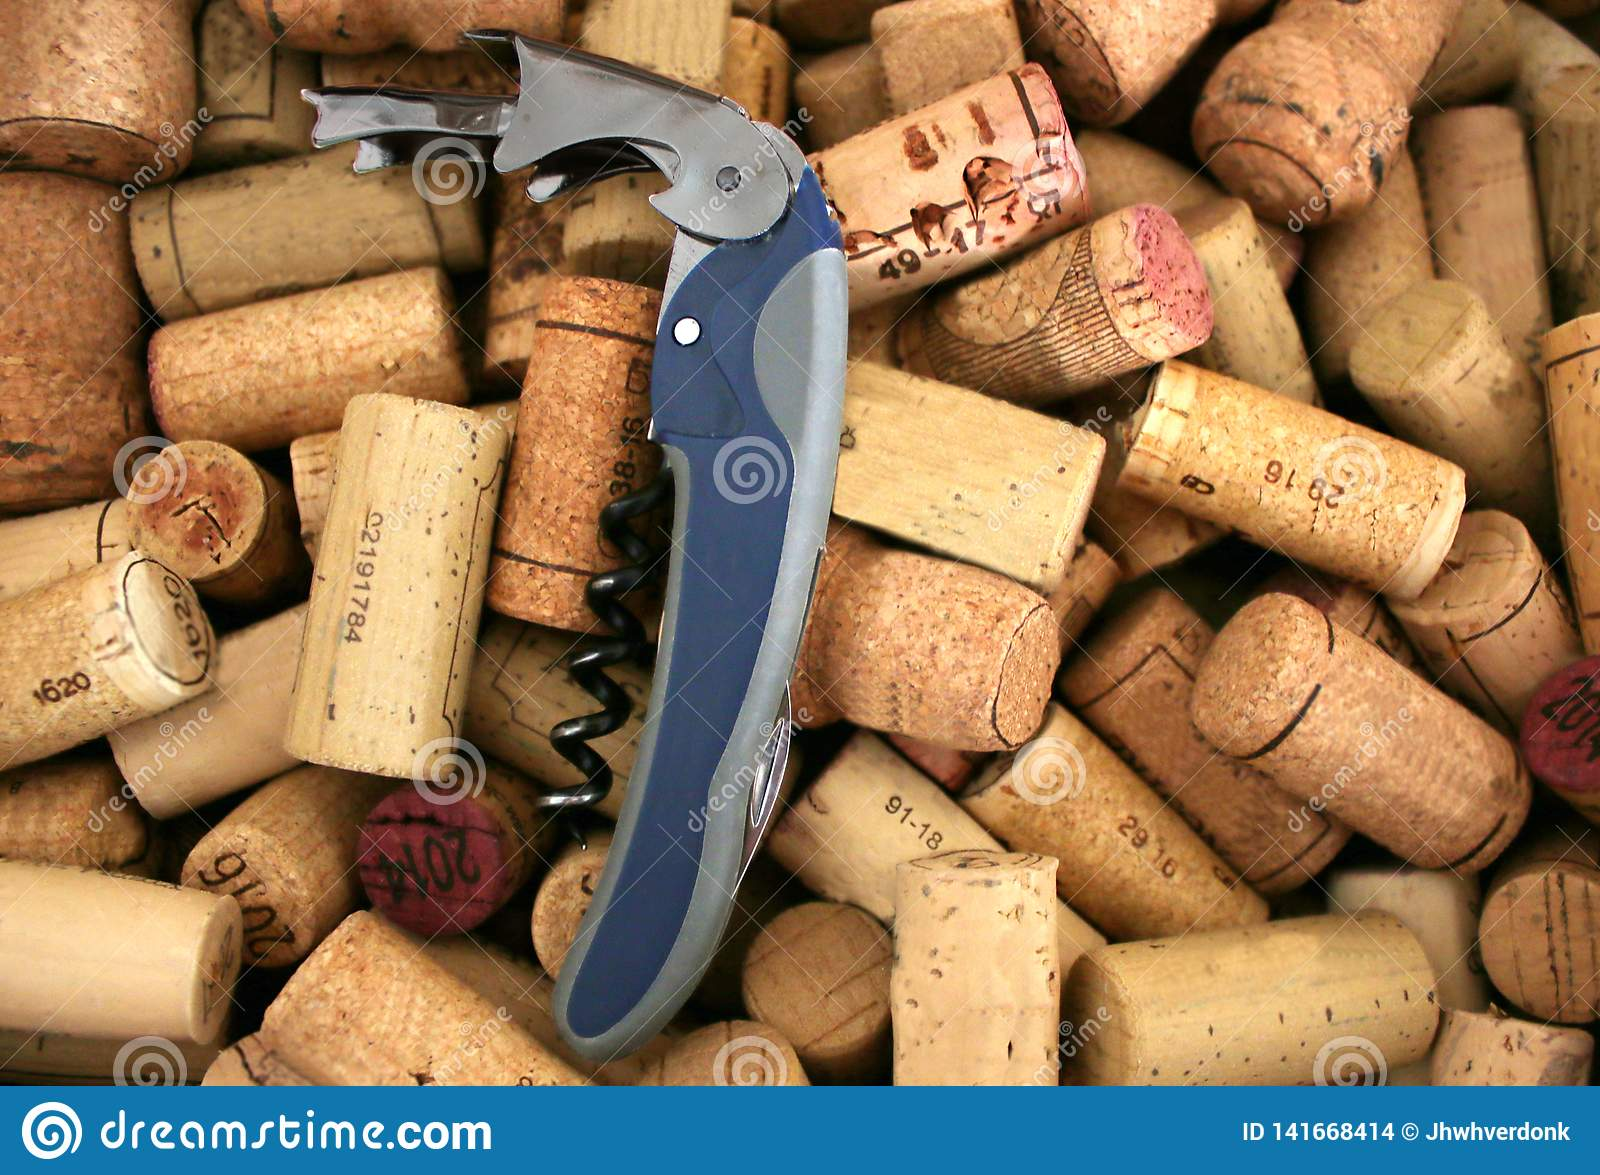 Closeup of a metal corkscrew in the midst of wooden corks